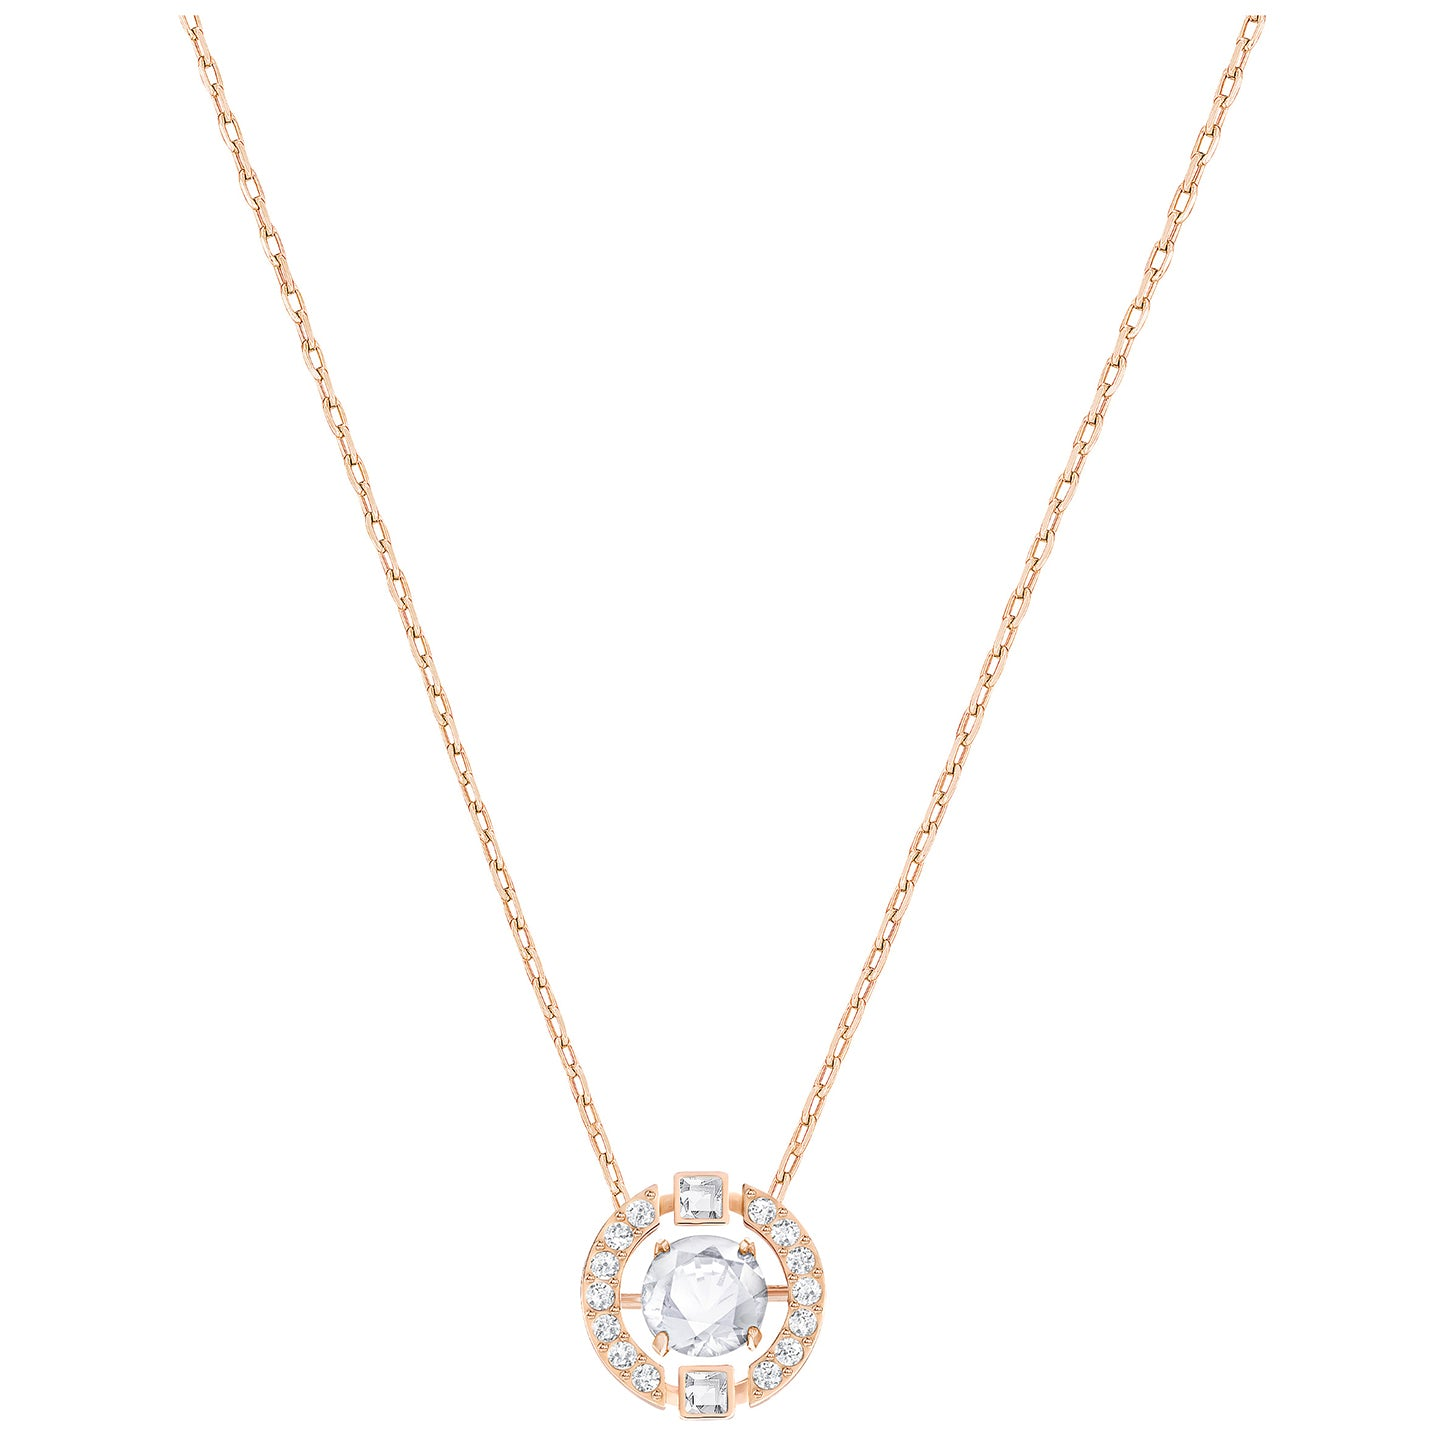 SPARKLING DANCE ROUND NECKLACE, WHITE, ROSE-GOLD PLATING